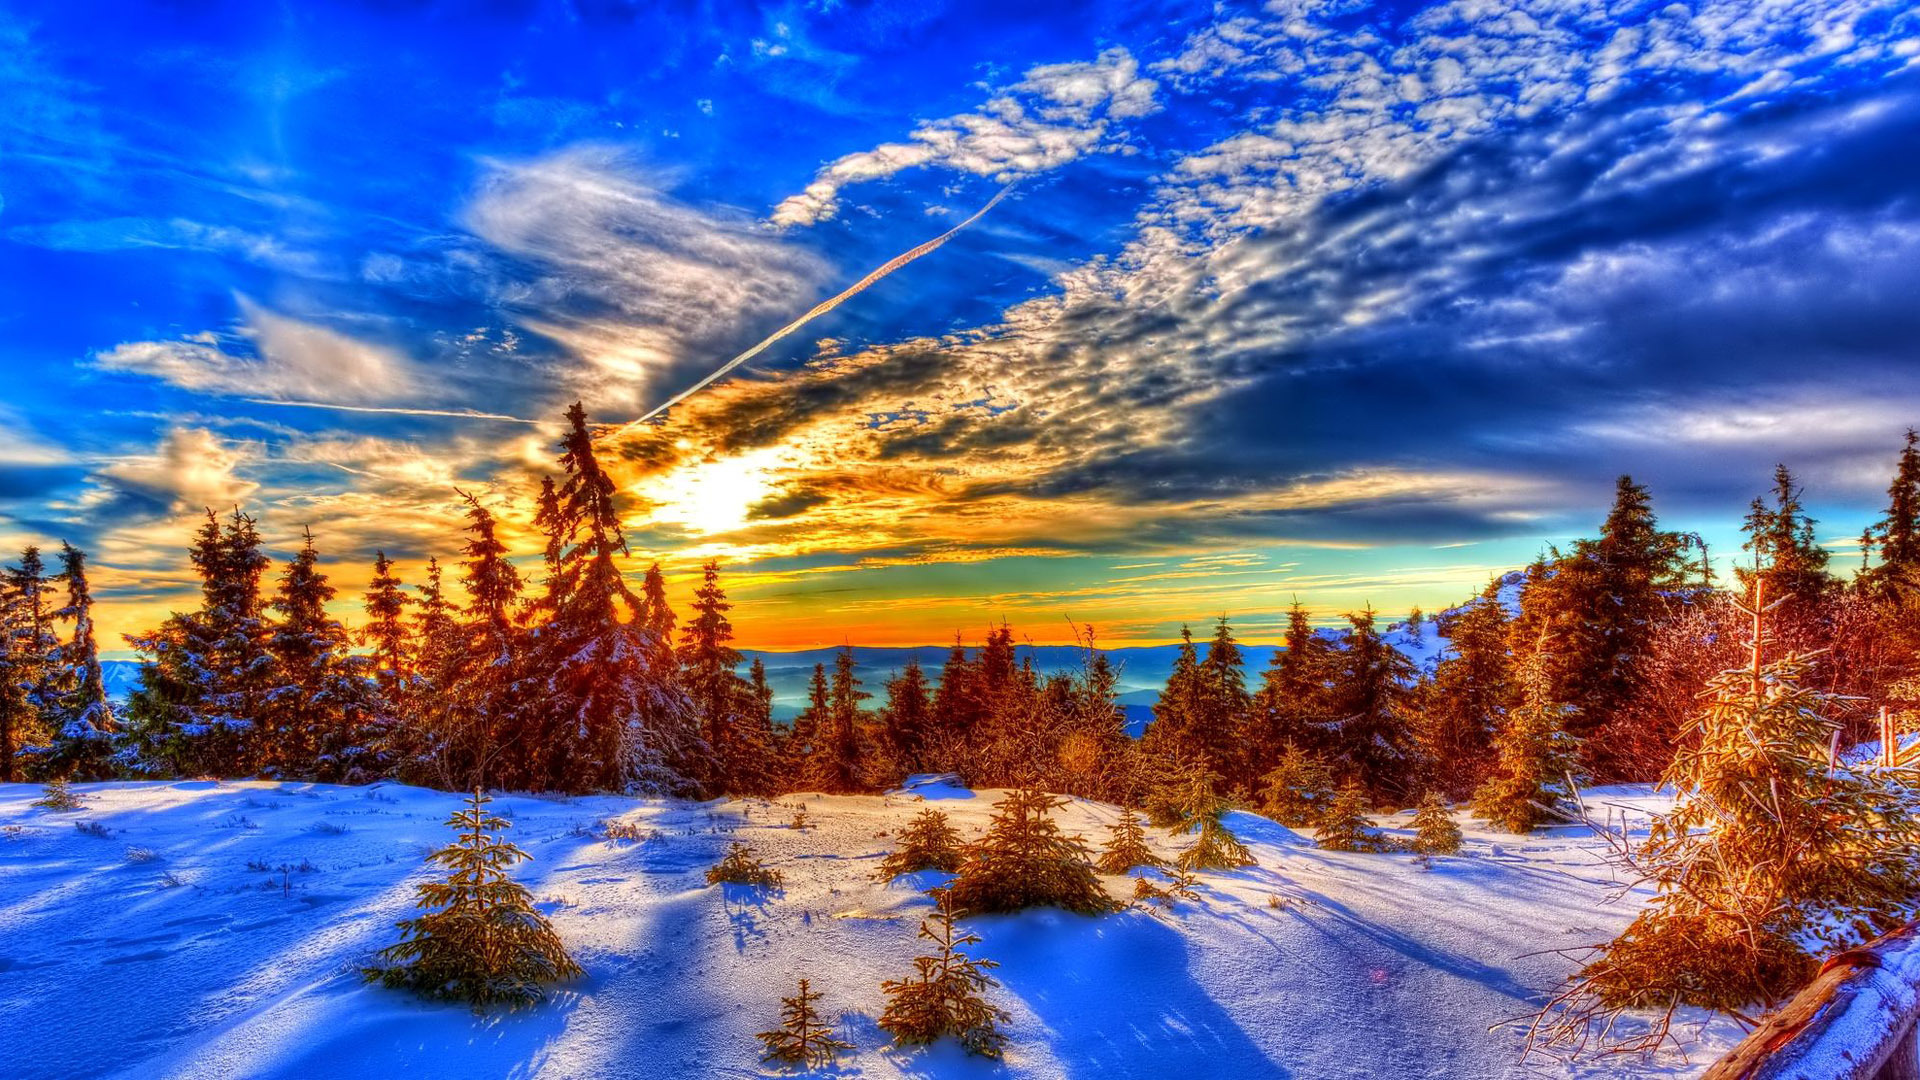 free winter wallpaper hd